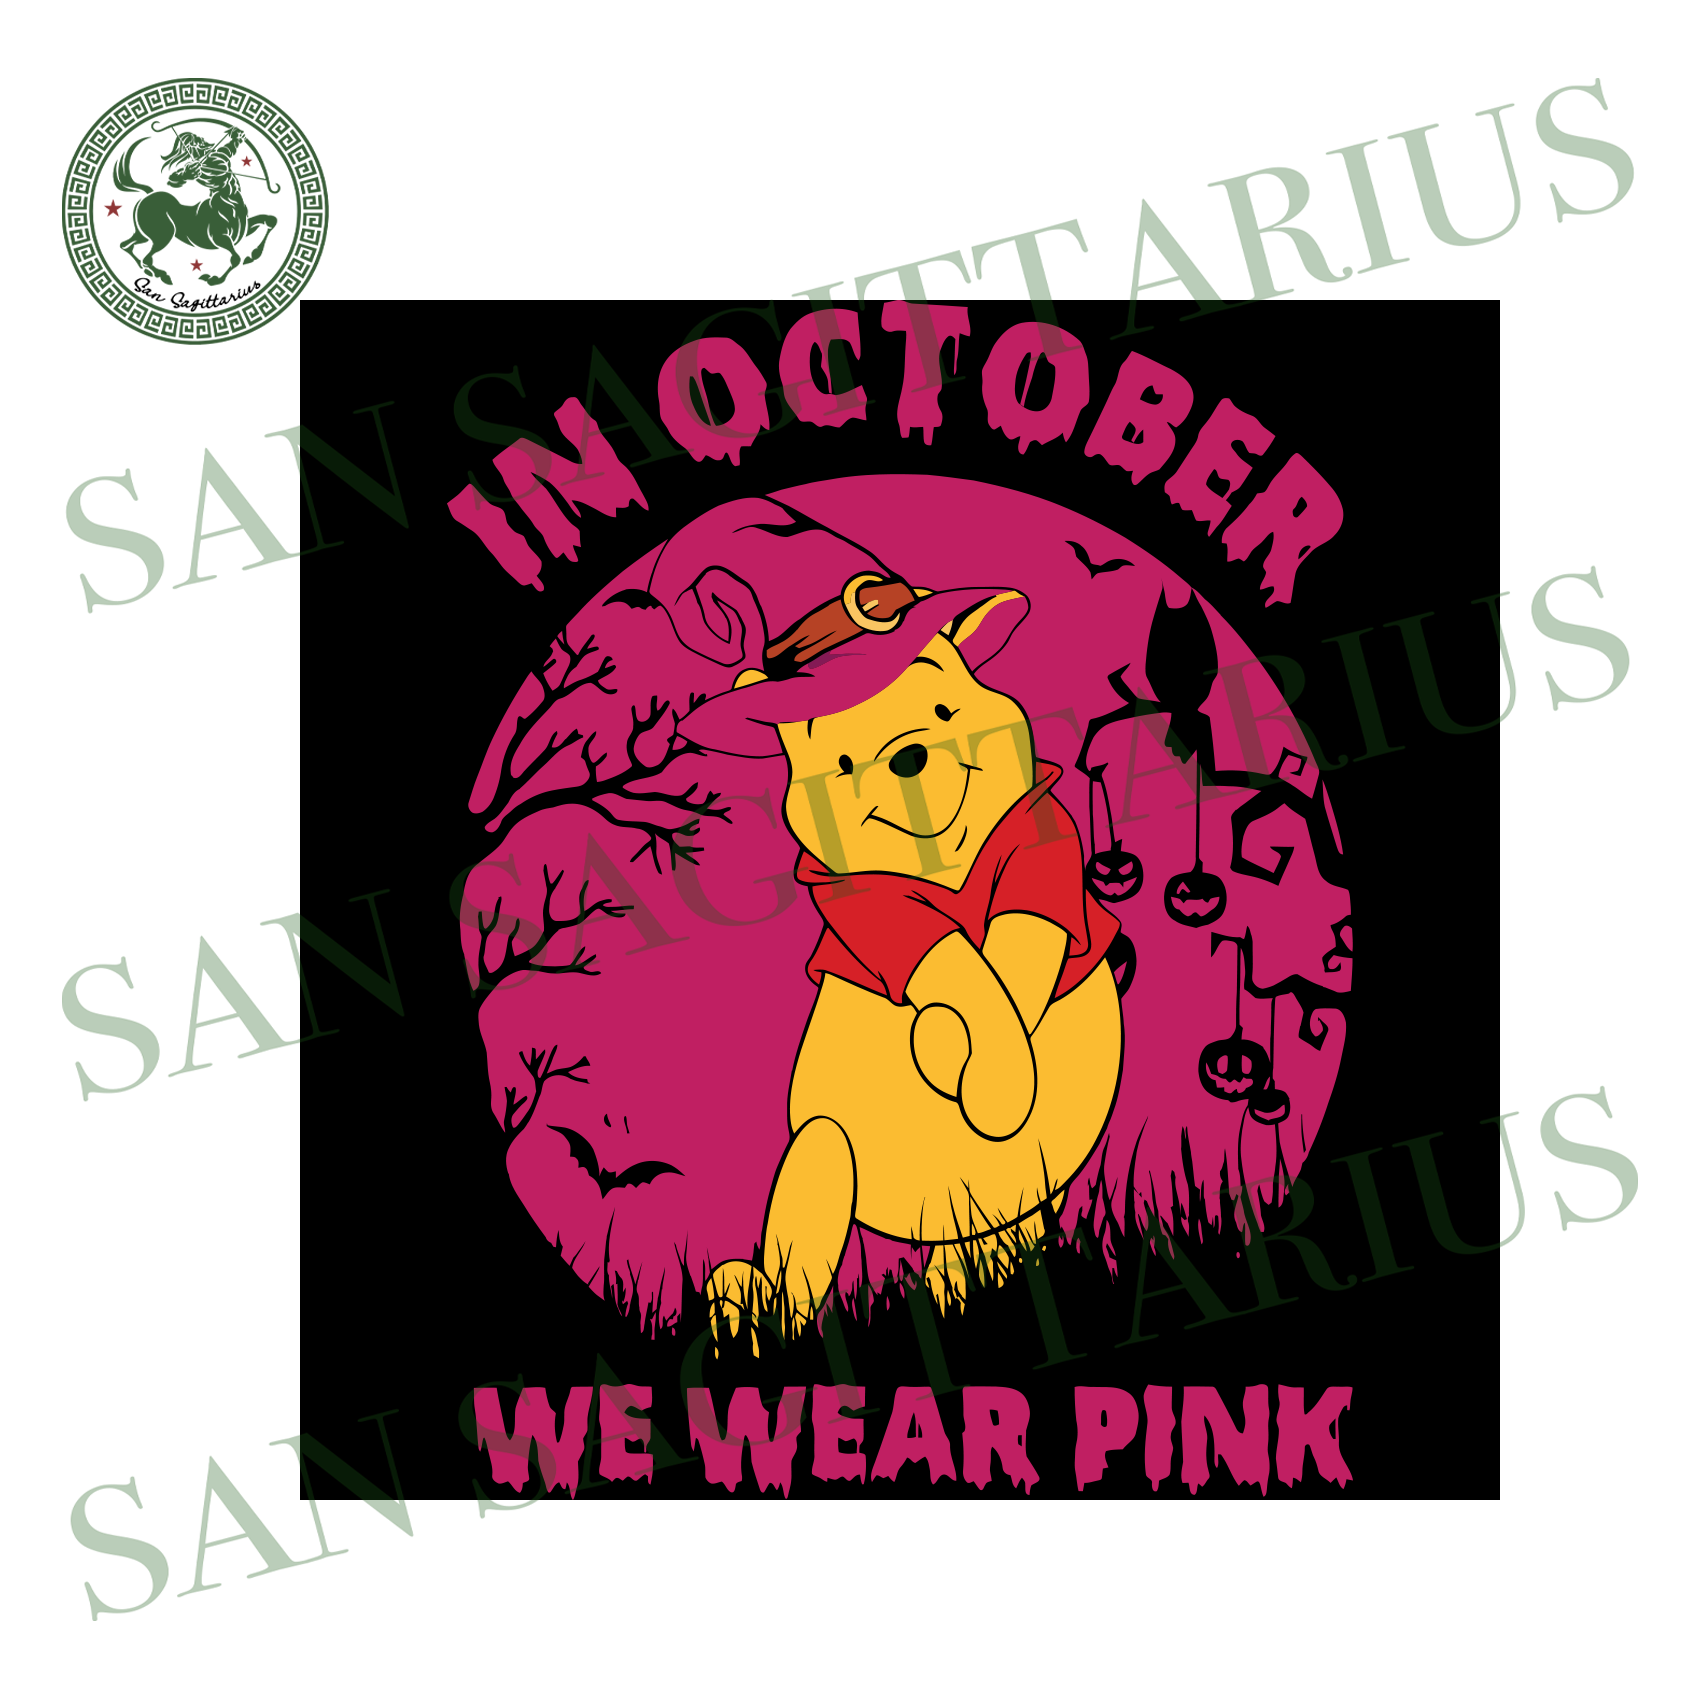 Cute Pooh In October We Wear Pink, Halloween Svg, Happy Halloween, Halloween Gift, Halloween Shirt, Halloween Icon, Halloween Vector, Nightmare Svg, Pooh Bear Svg, Cute Pooh Bear